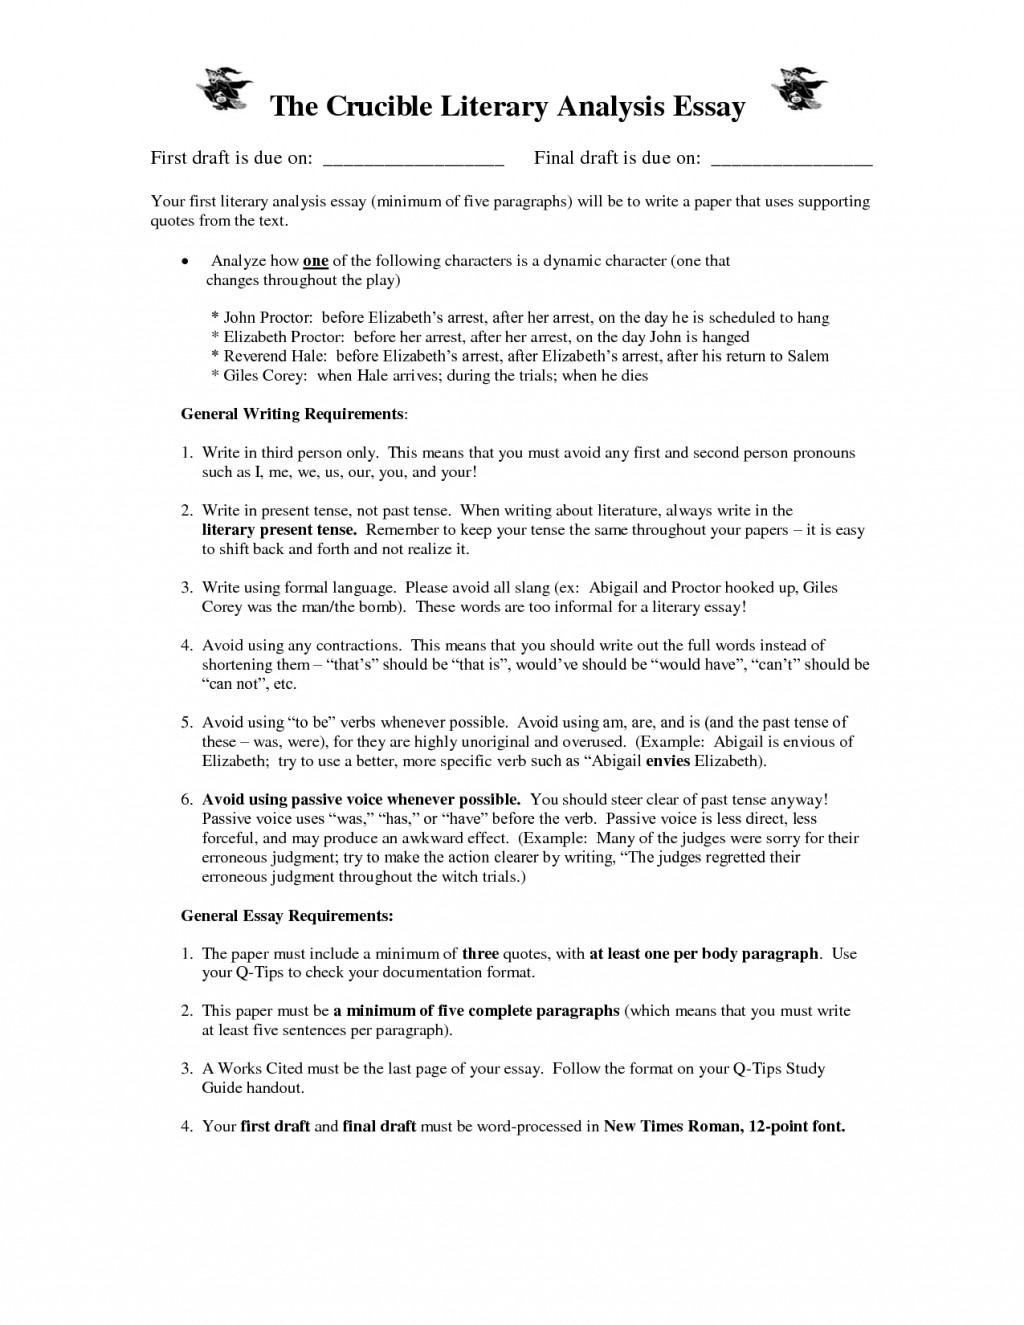 021 Essay Example Literary Essays Of The Crucible How Tote Step By Conclusion On Romeo And Juliet Introduction Do You Outline 4th Grade Analysis Pdf Formidable To Write A Literature Ppt Good English Large